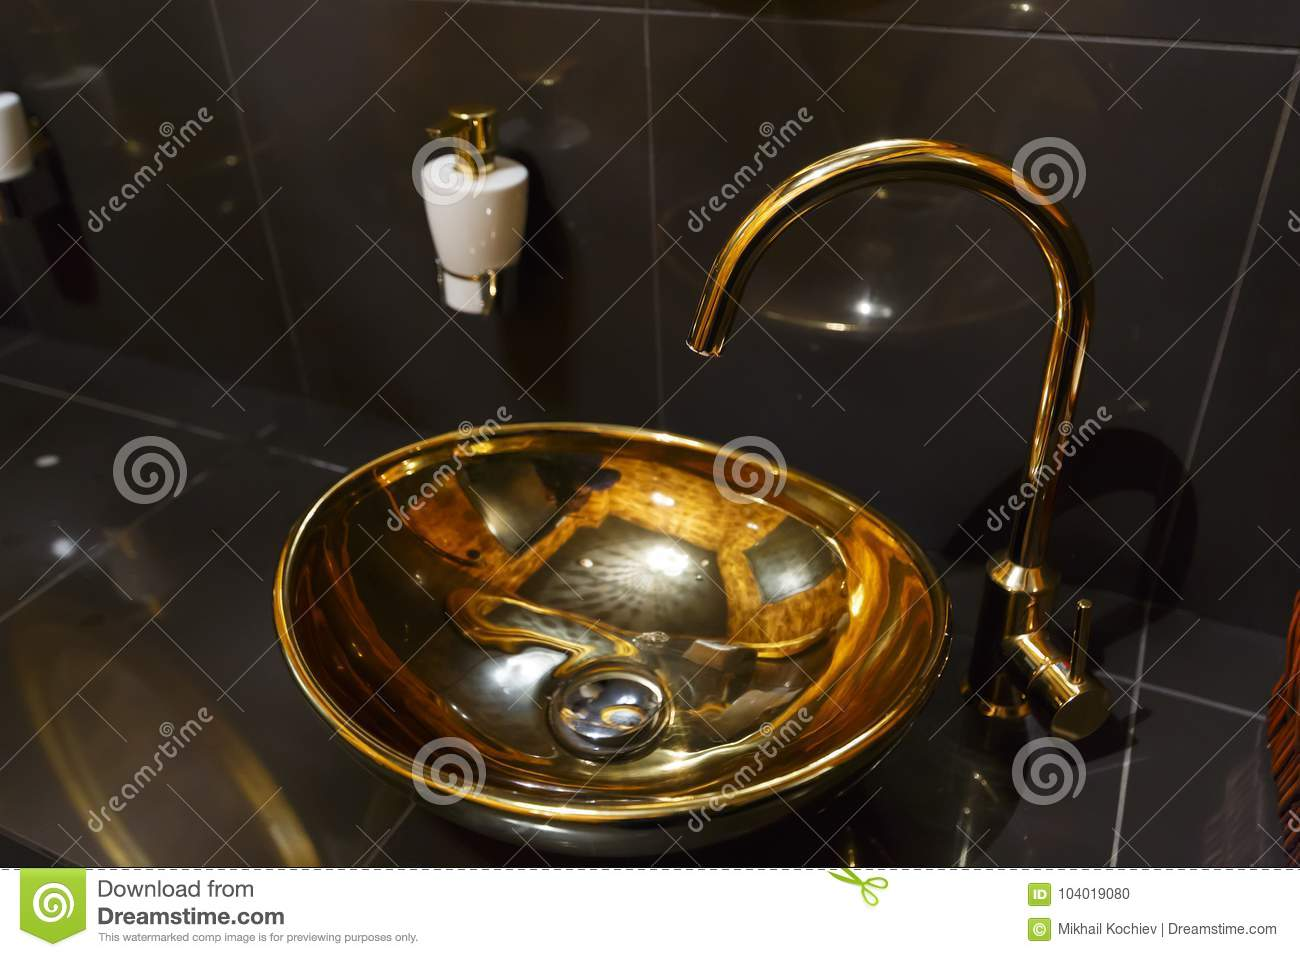 Copper Sink In A Cafe In The Toilet Stock Photo - Image of ...